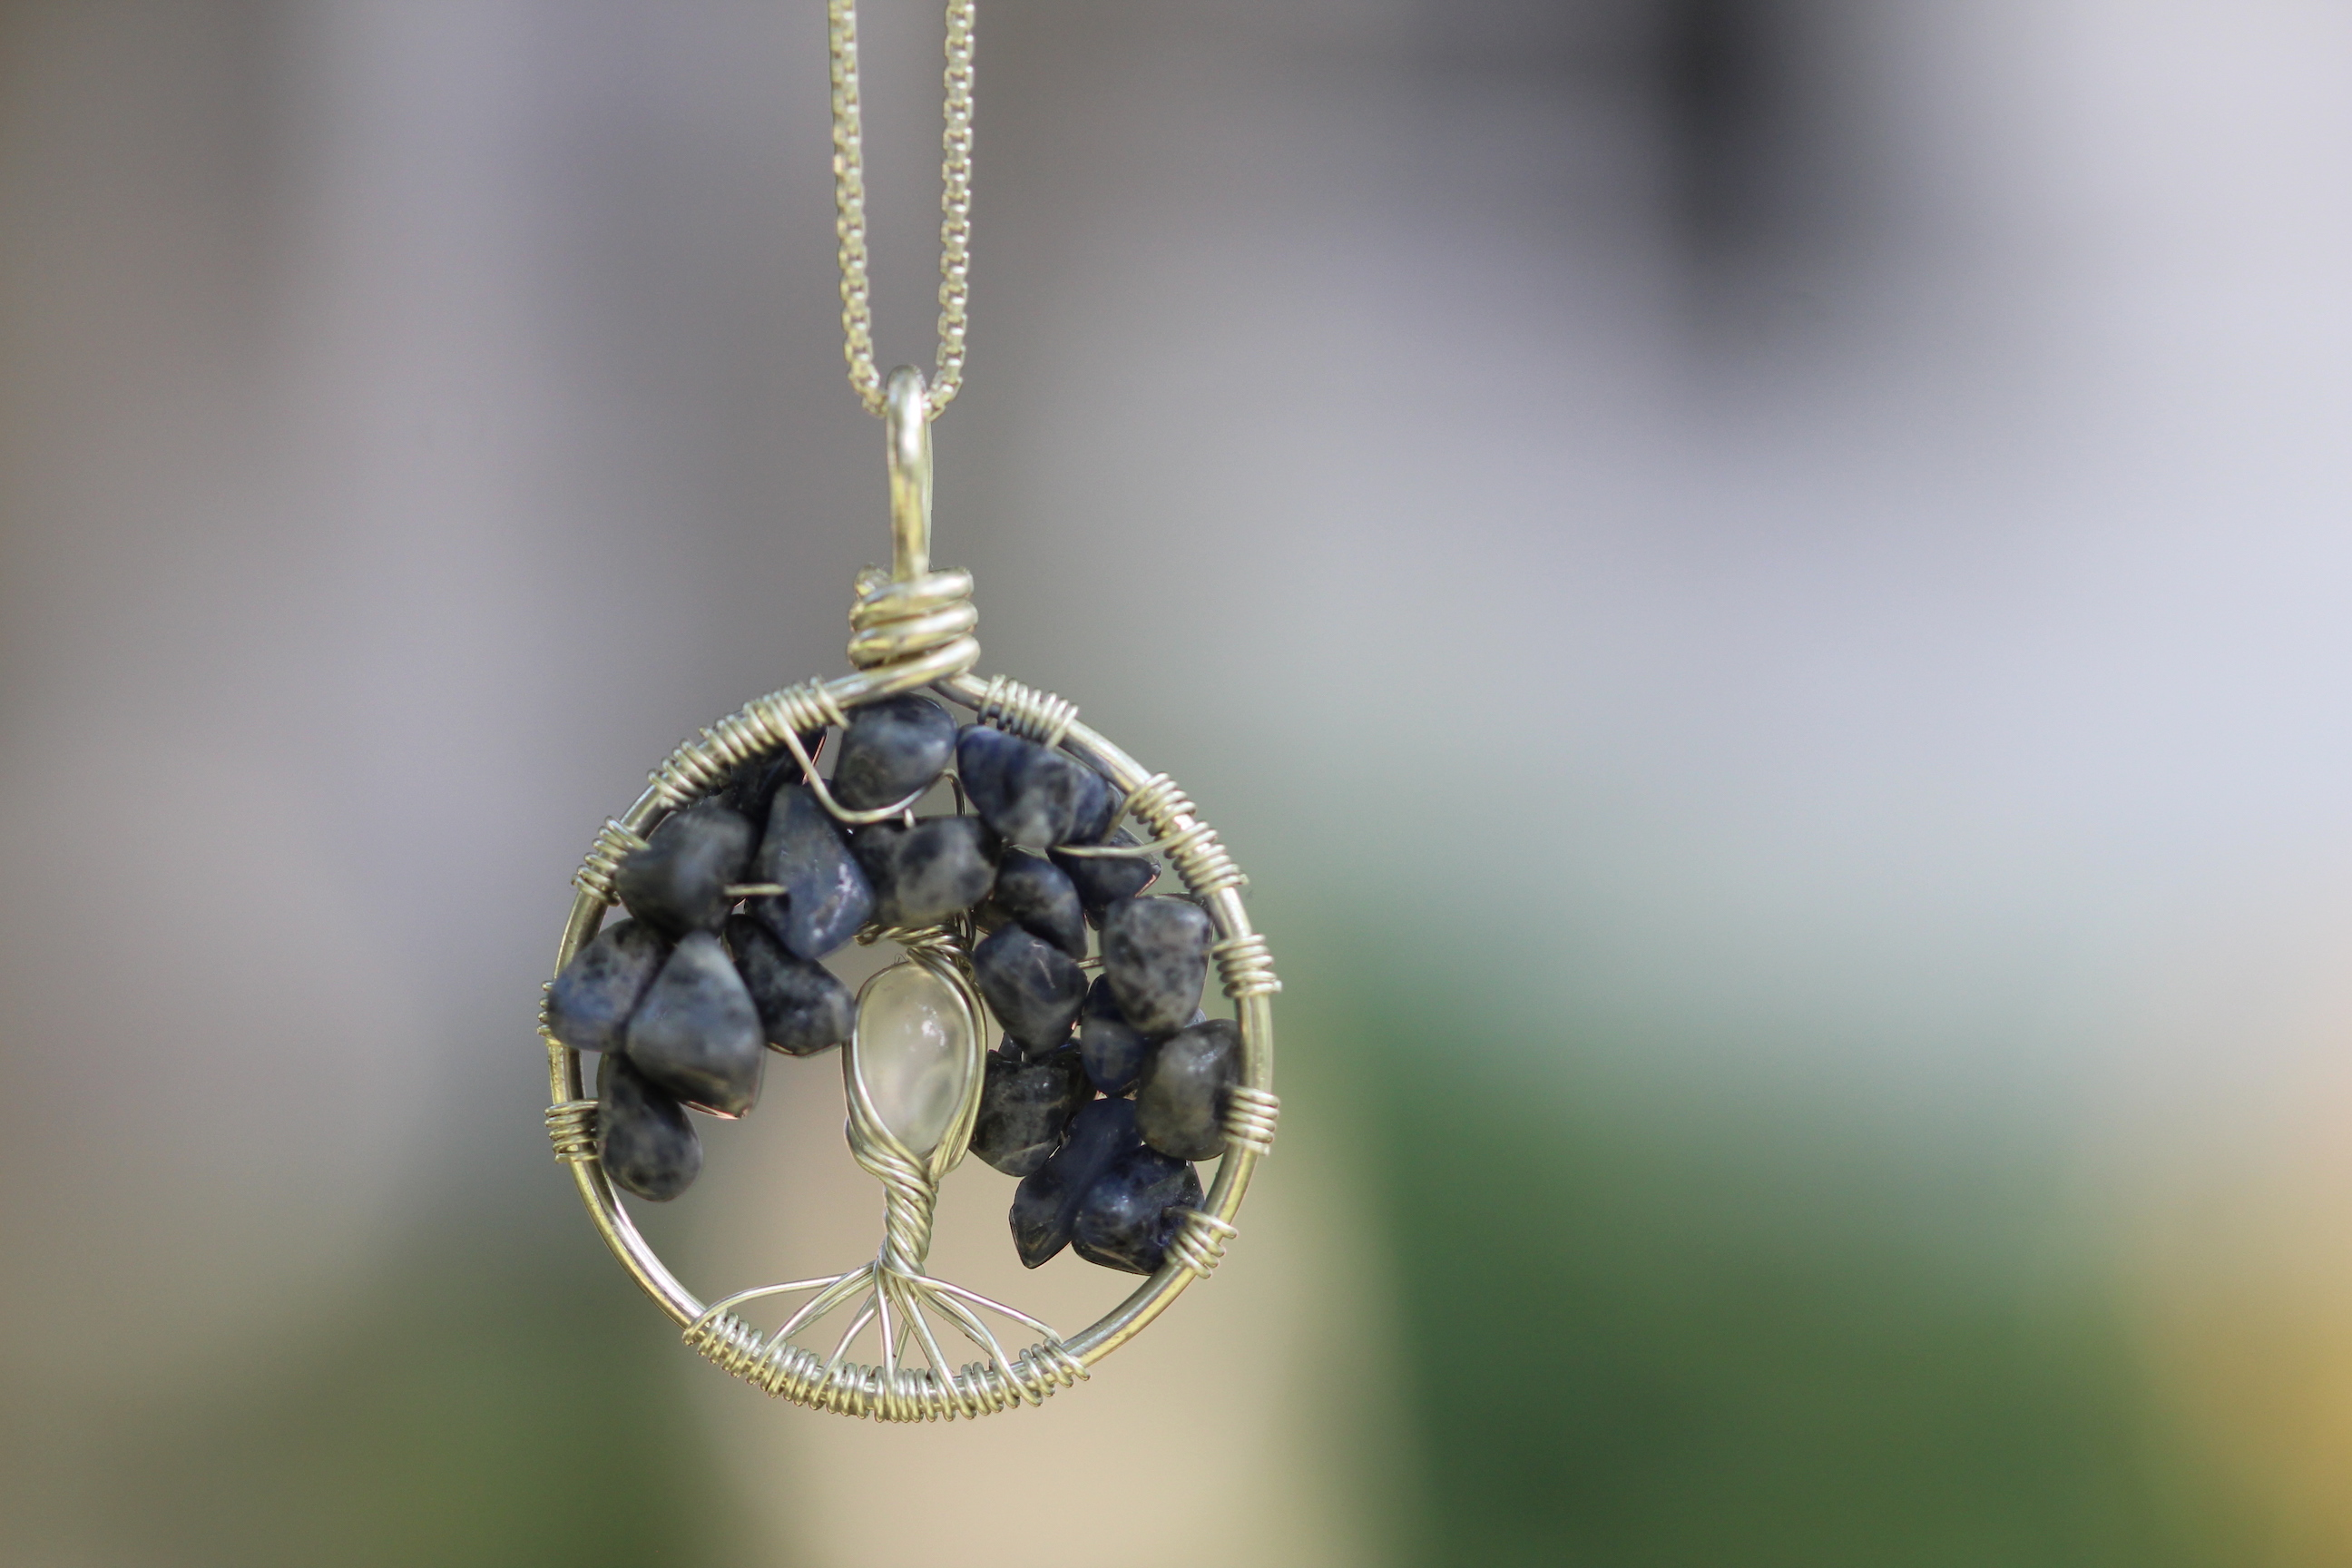 Creative Expressions - Tree of Life Pendant - Sodalite - Moonstone - Silver Wire